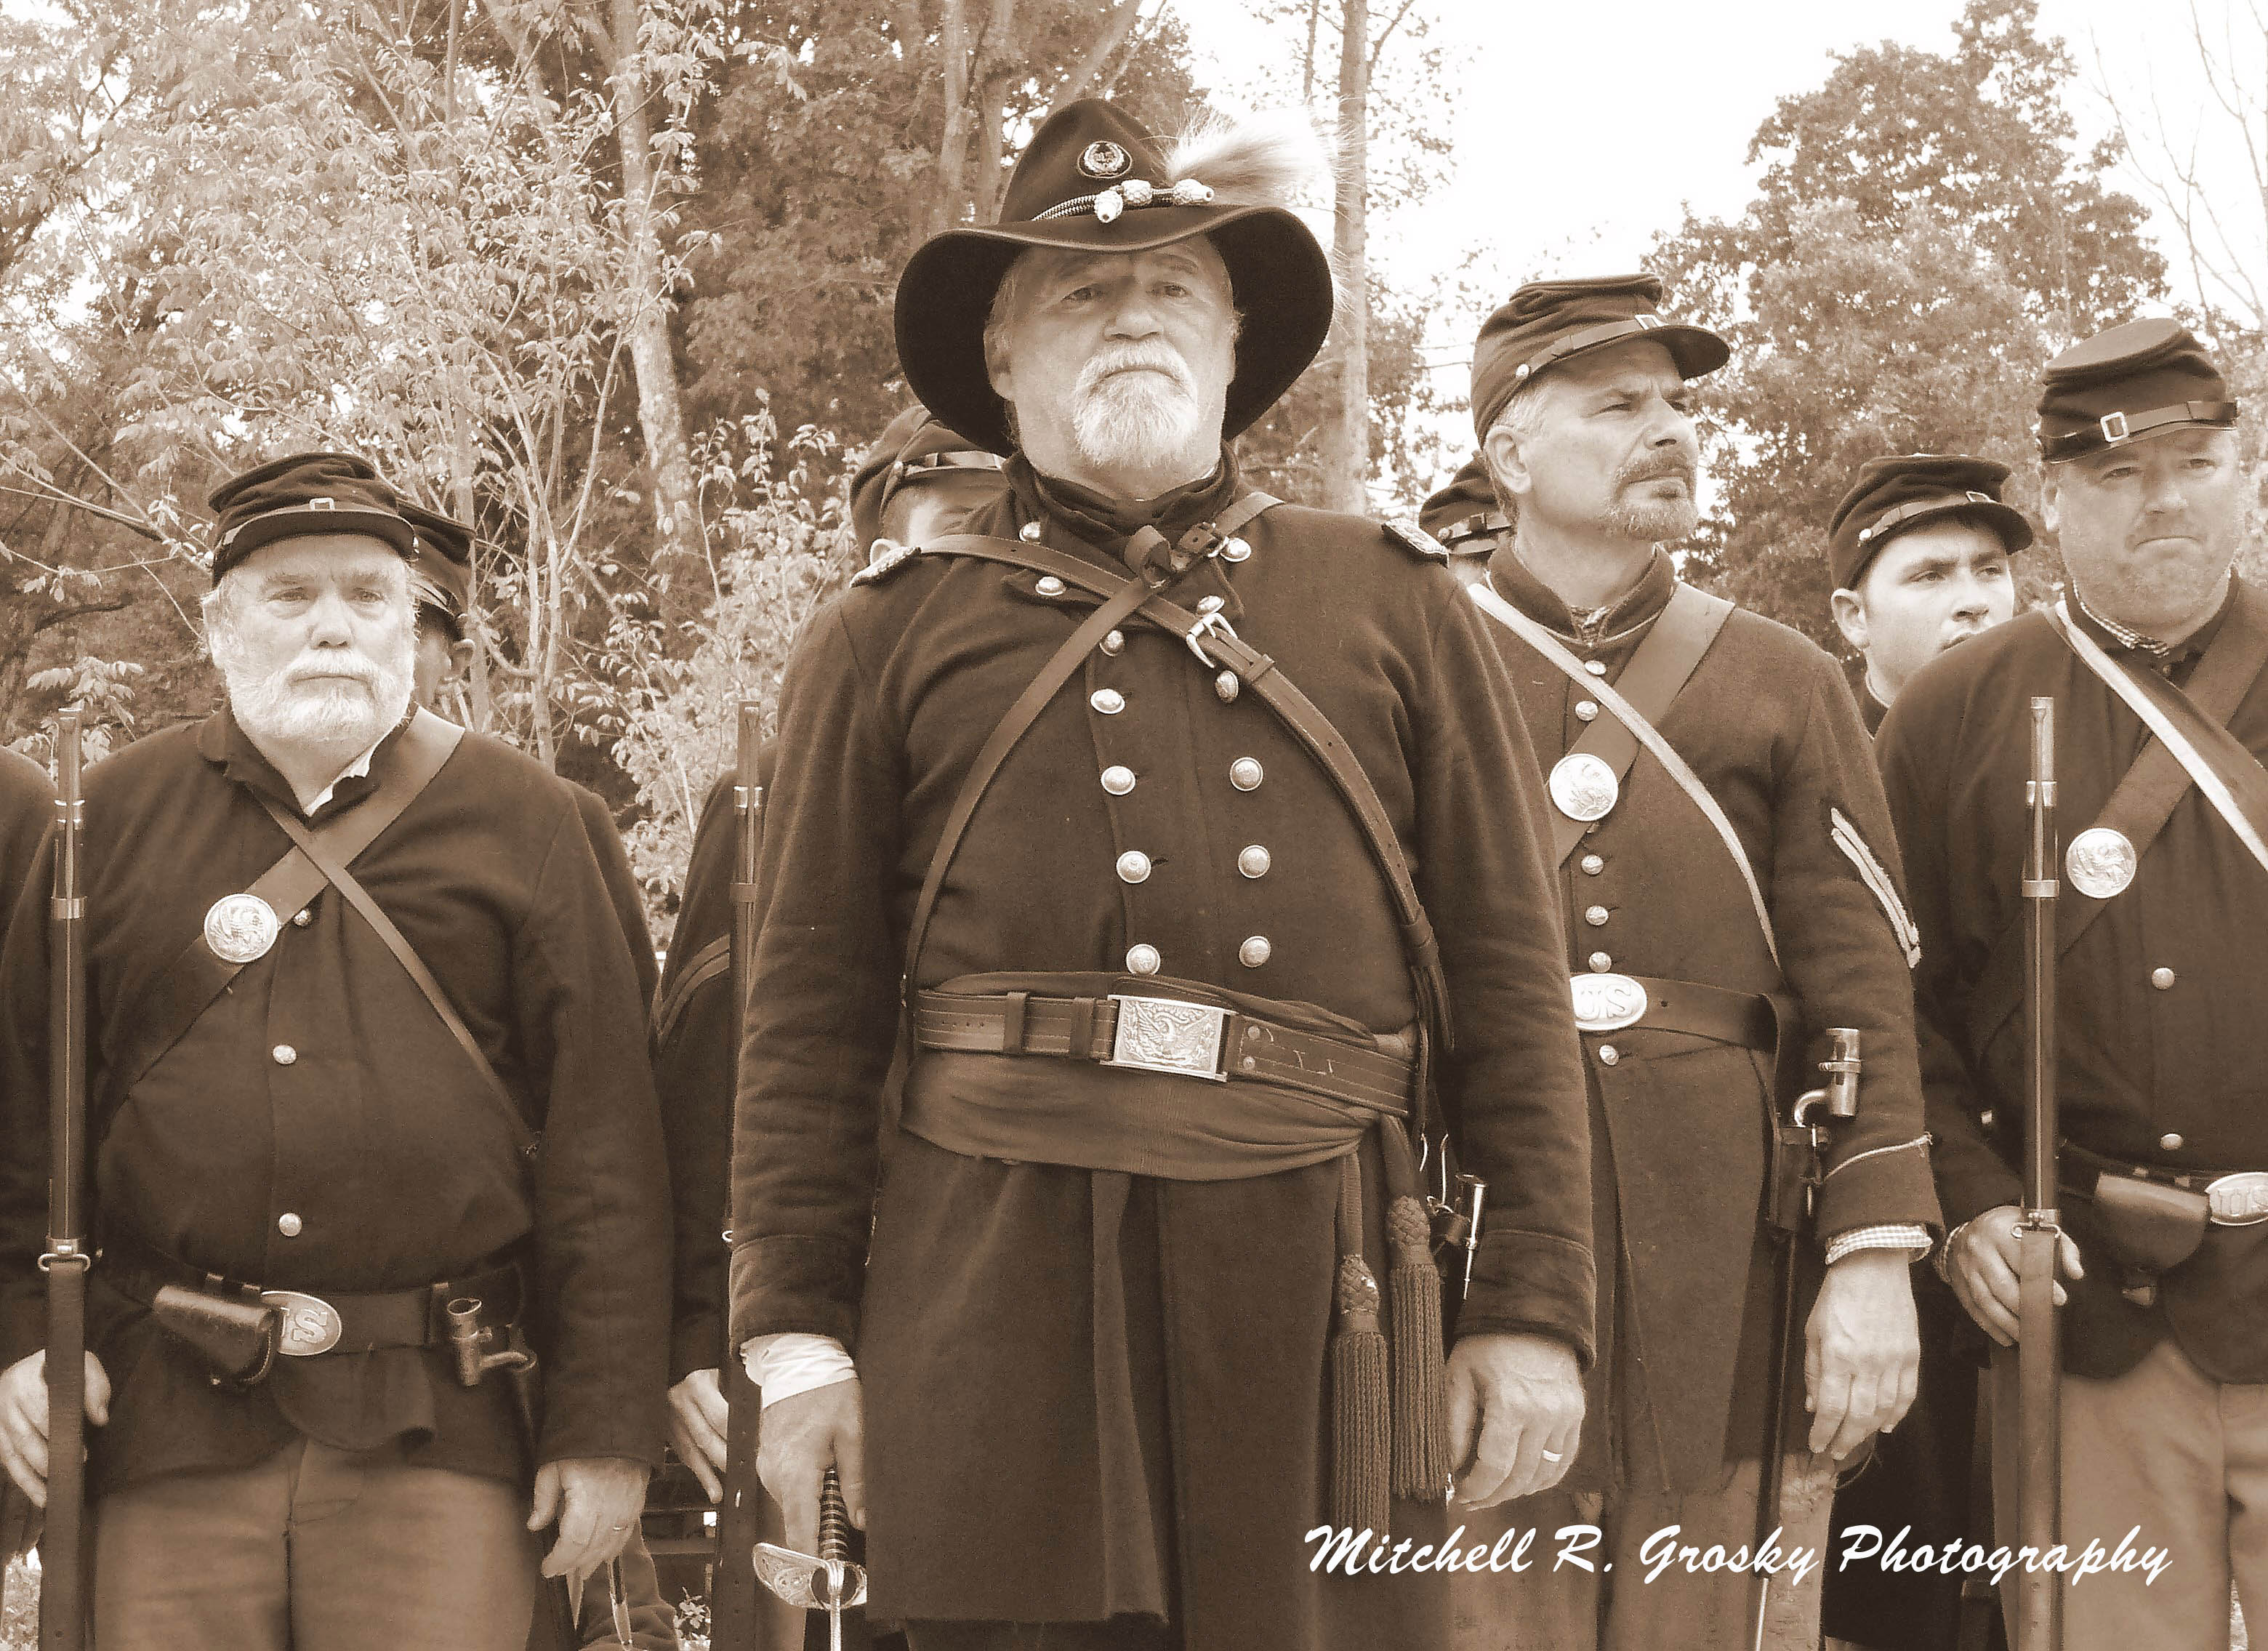 A group of Union soldiers